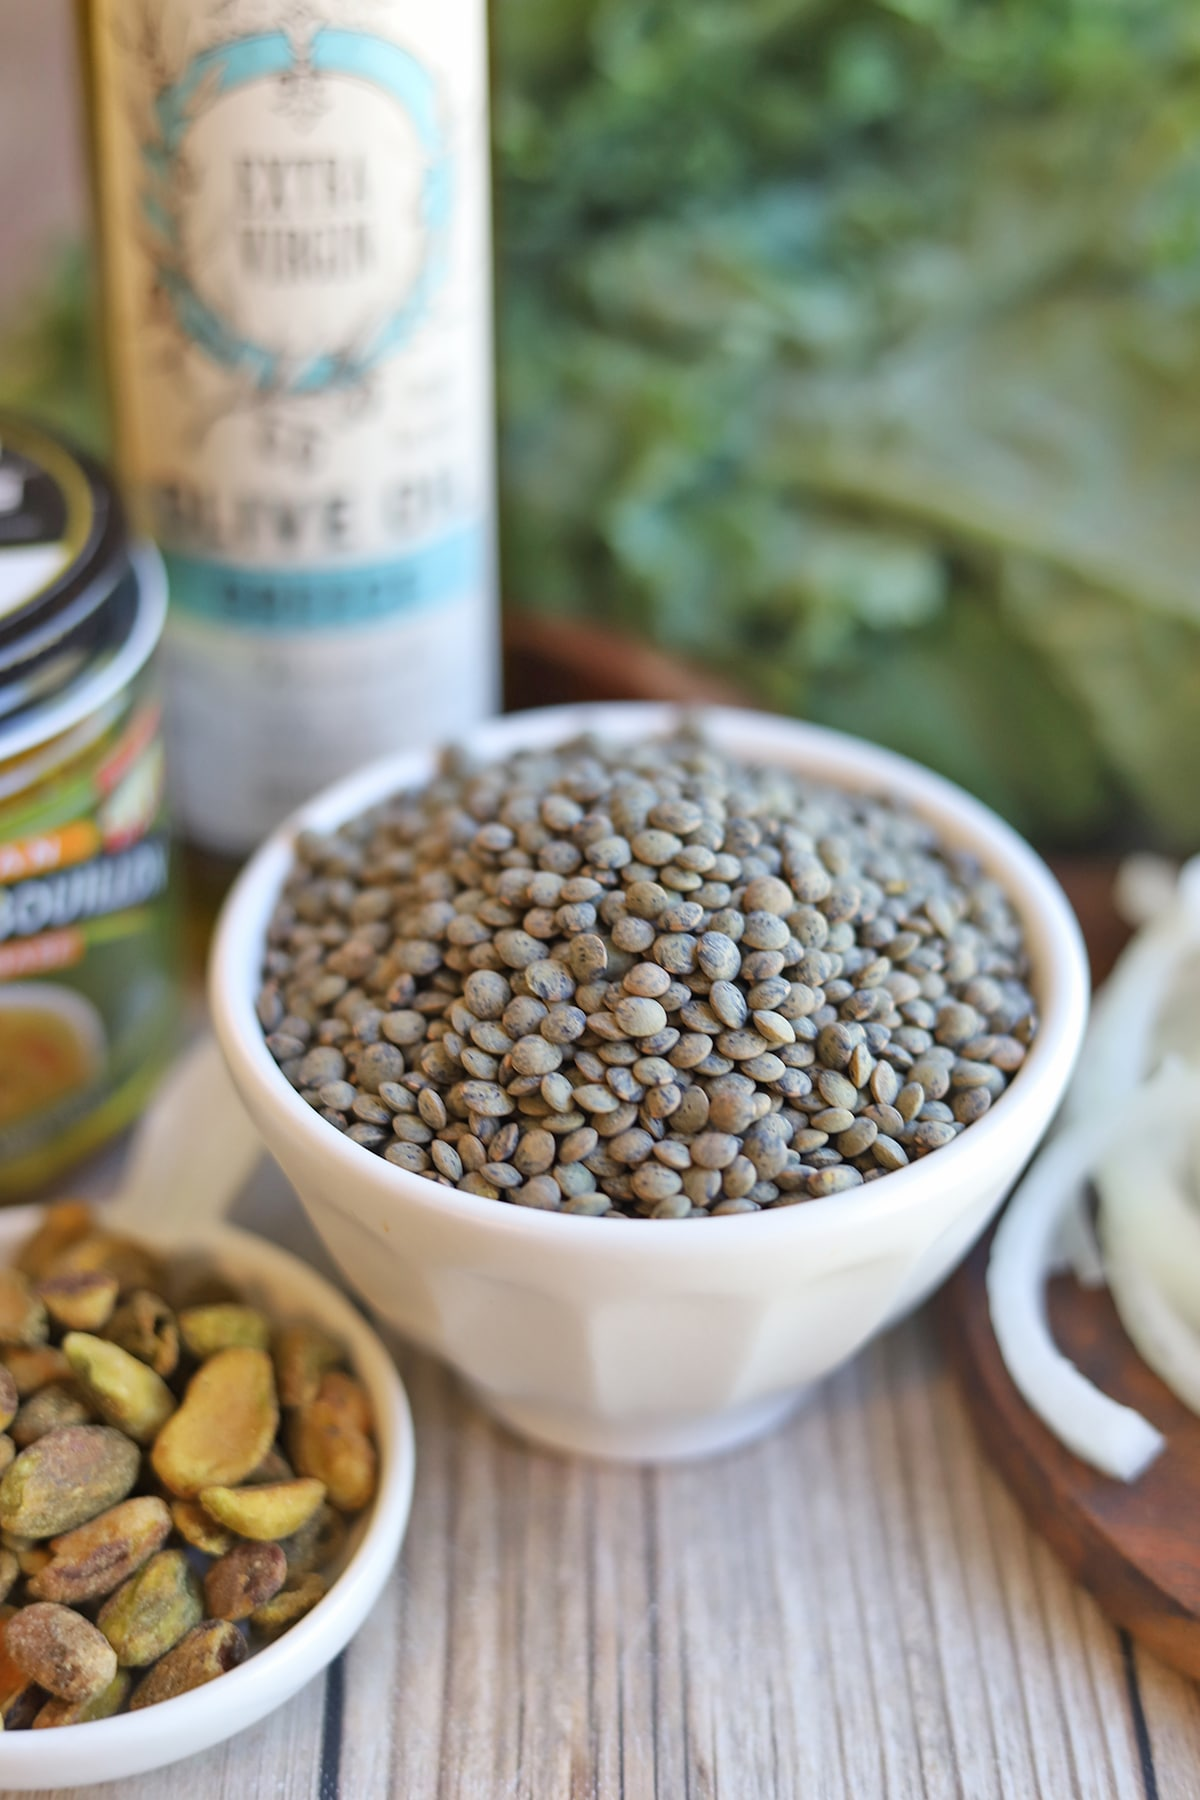 Dried French lentils in white bowl by olive oil and pistachios.